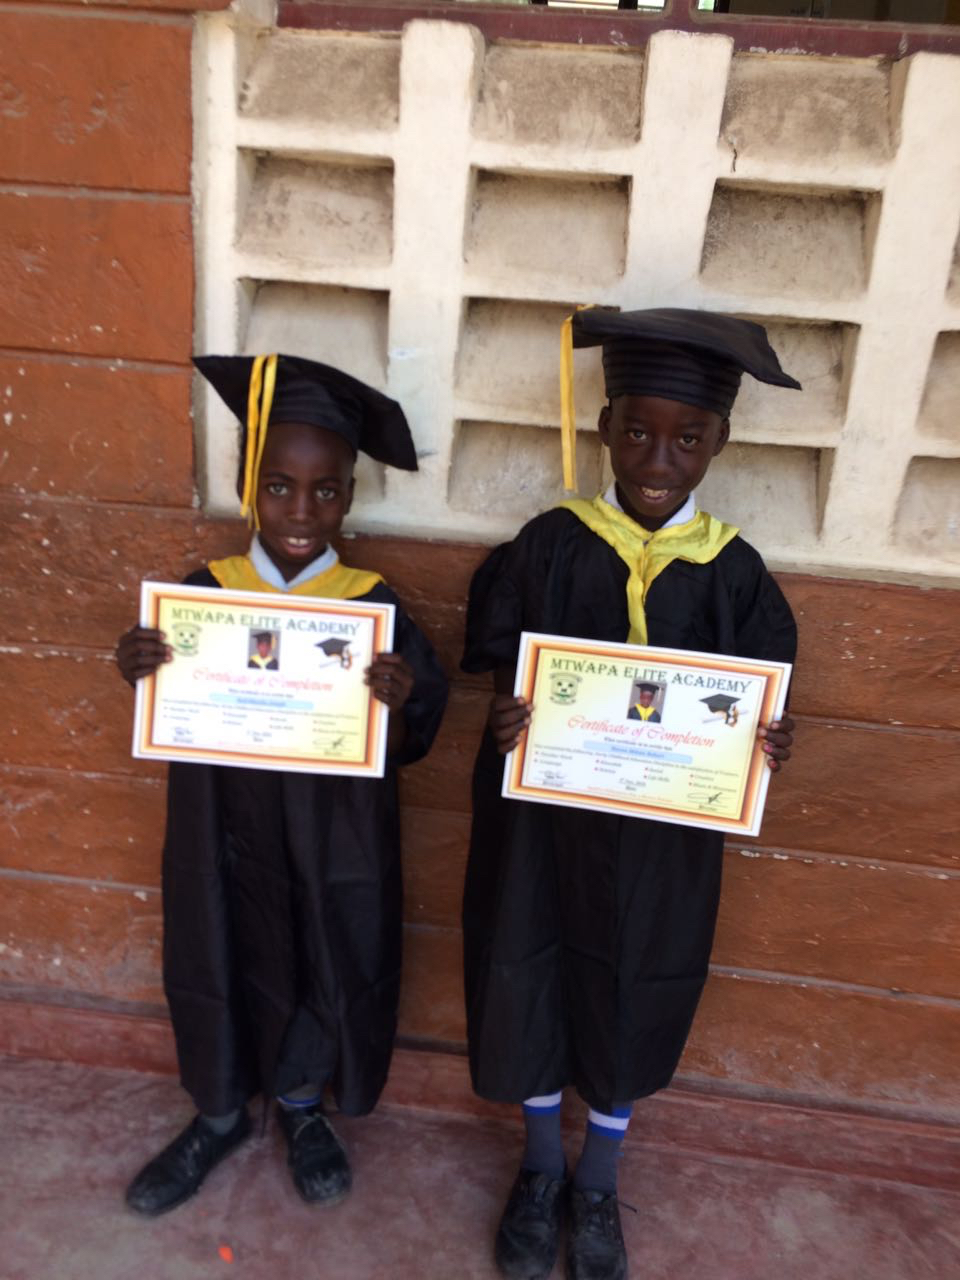 The first Milele children to wear graduation caps - watch out Emmanuel Kai, you're not the only graduate-to-be on the block now!!!